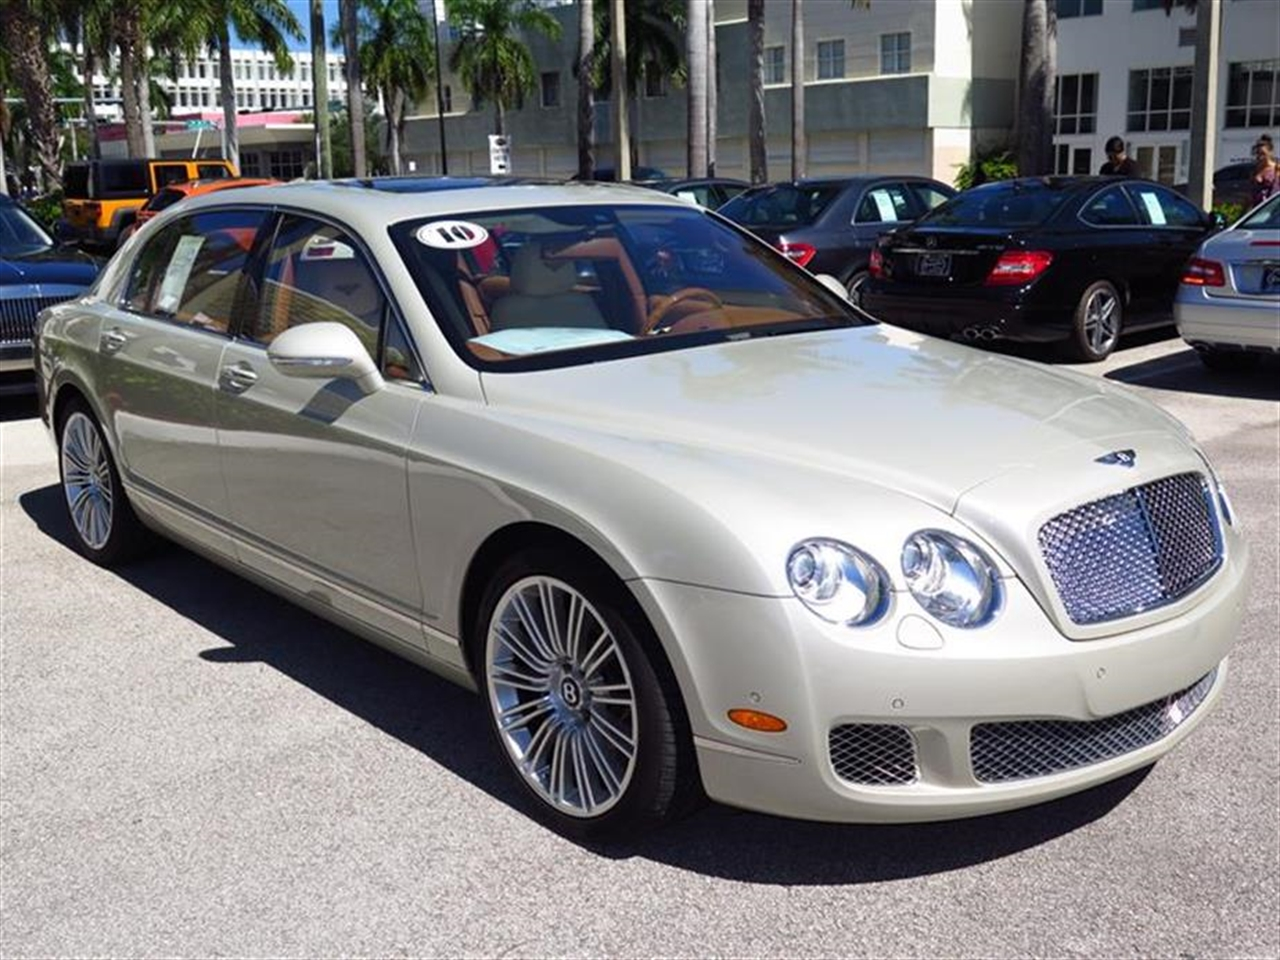 2010 BENTLEY CONTINENTAL FLYING SPUR 4dr Sdn Speed 13550 miles 3-spoke monotone leather trimmed st